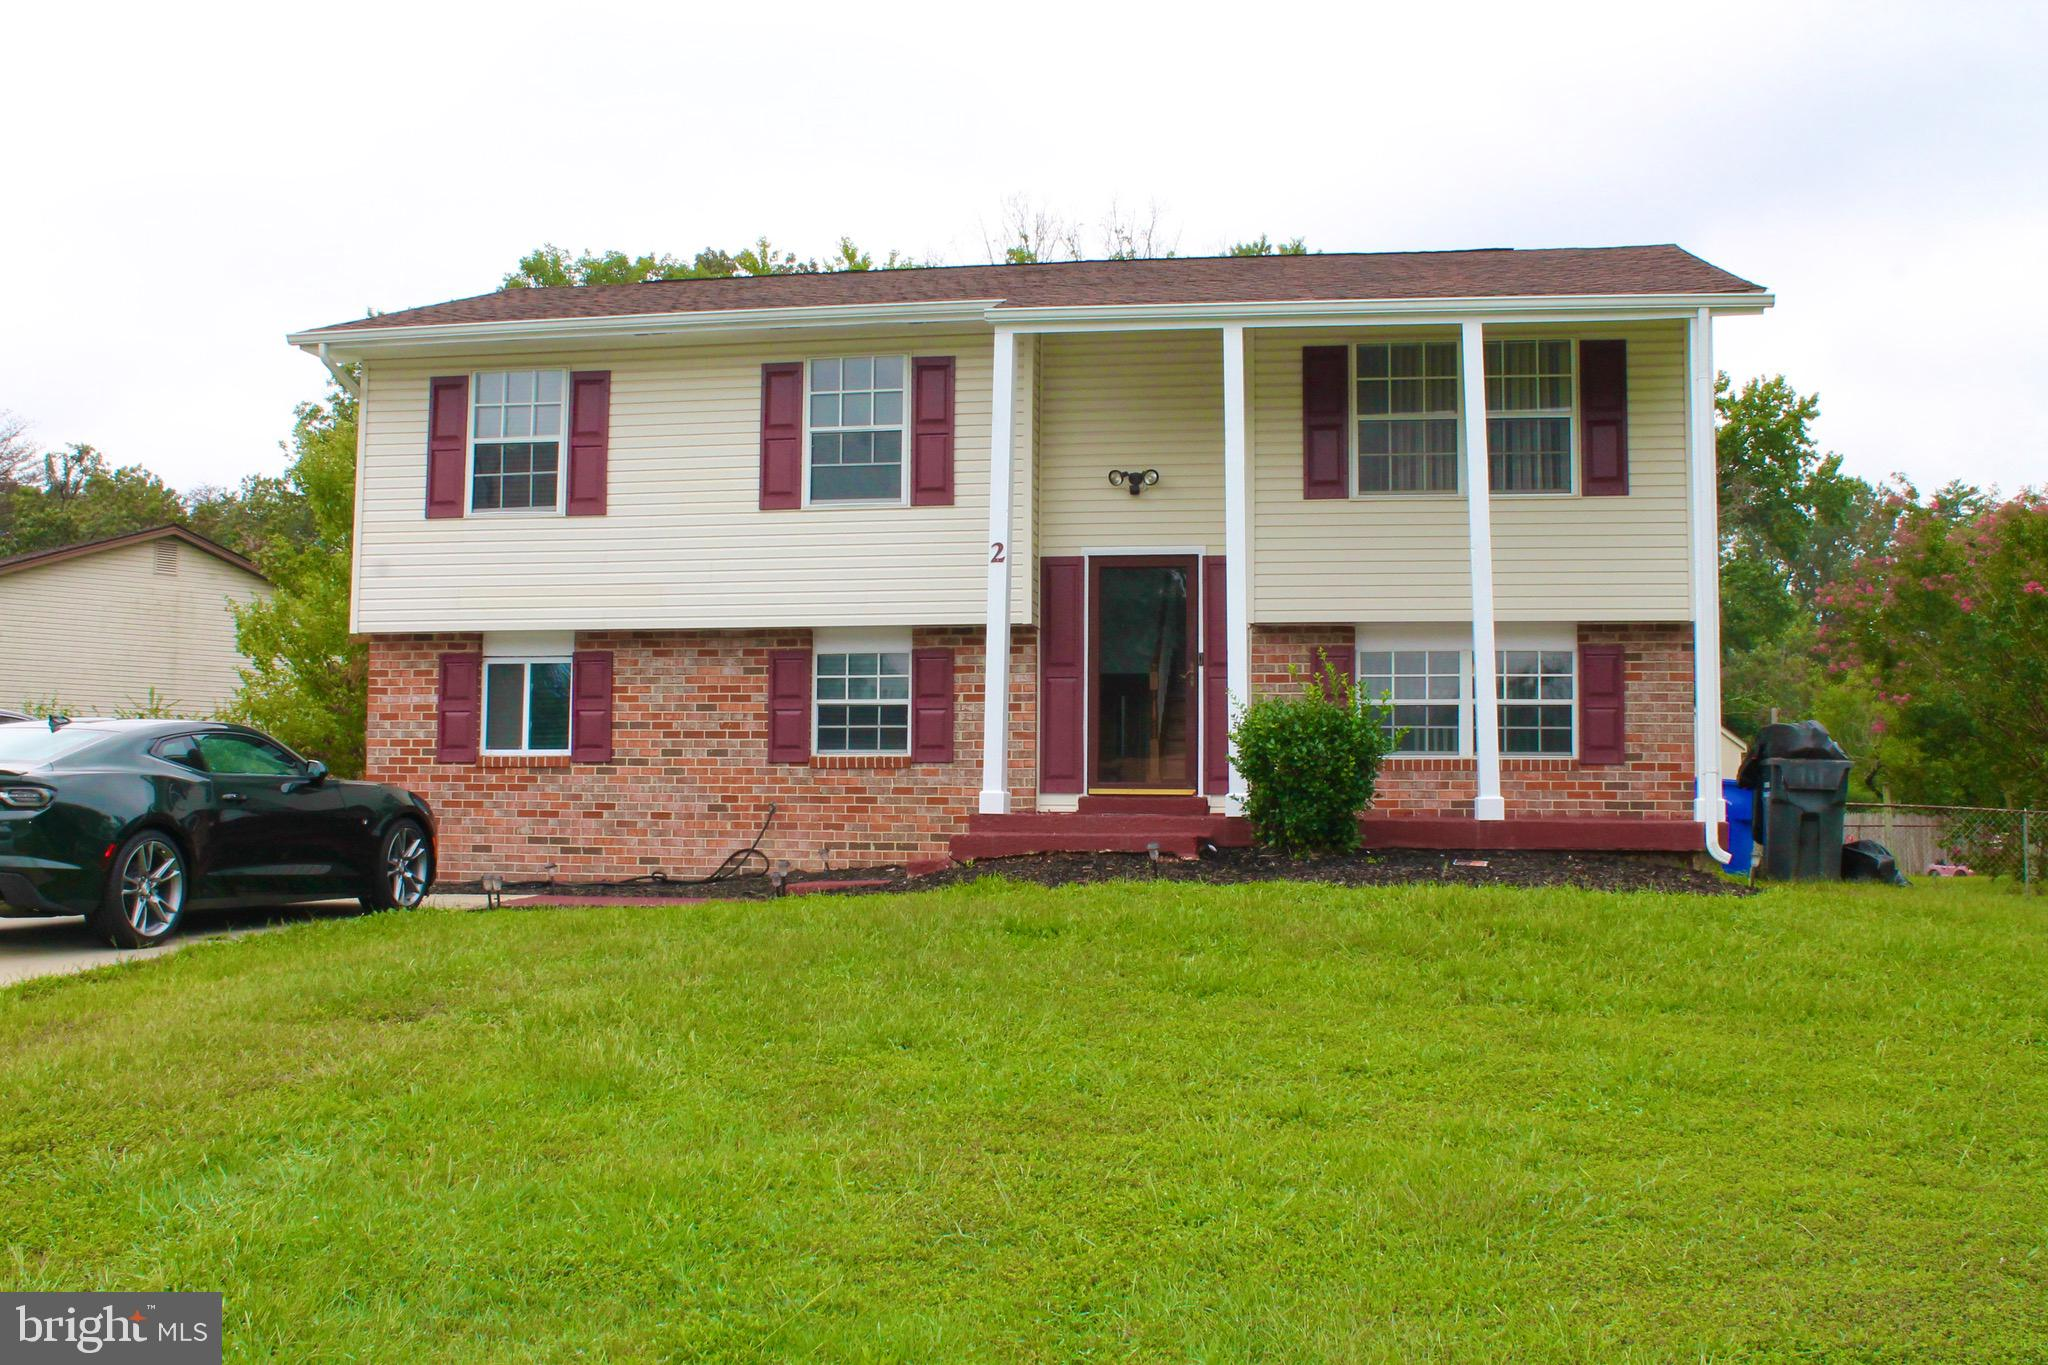 THIS BEAUTIFUL SPLIT FOYER HOME W/WHITE COLUMNS IS LOCATED ON A 1/4 ACRE CORNER LOT. IT FEATURES HAR